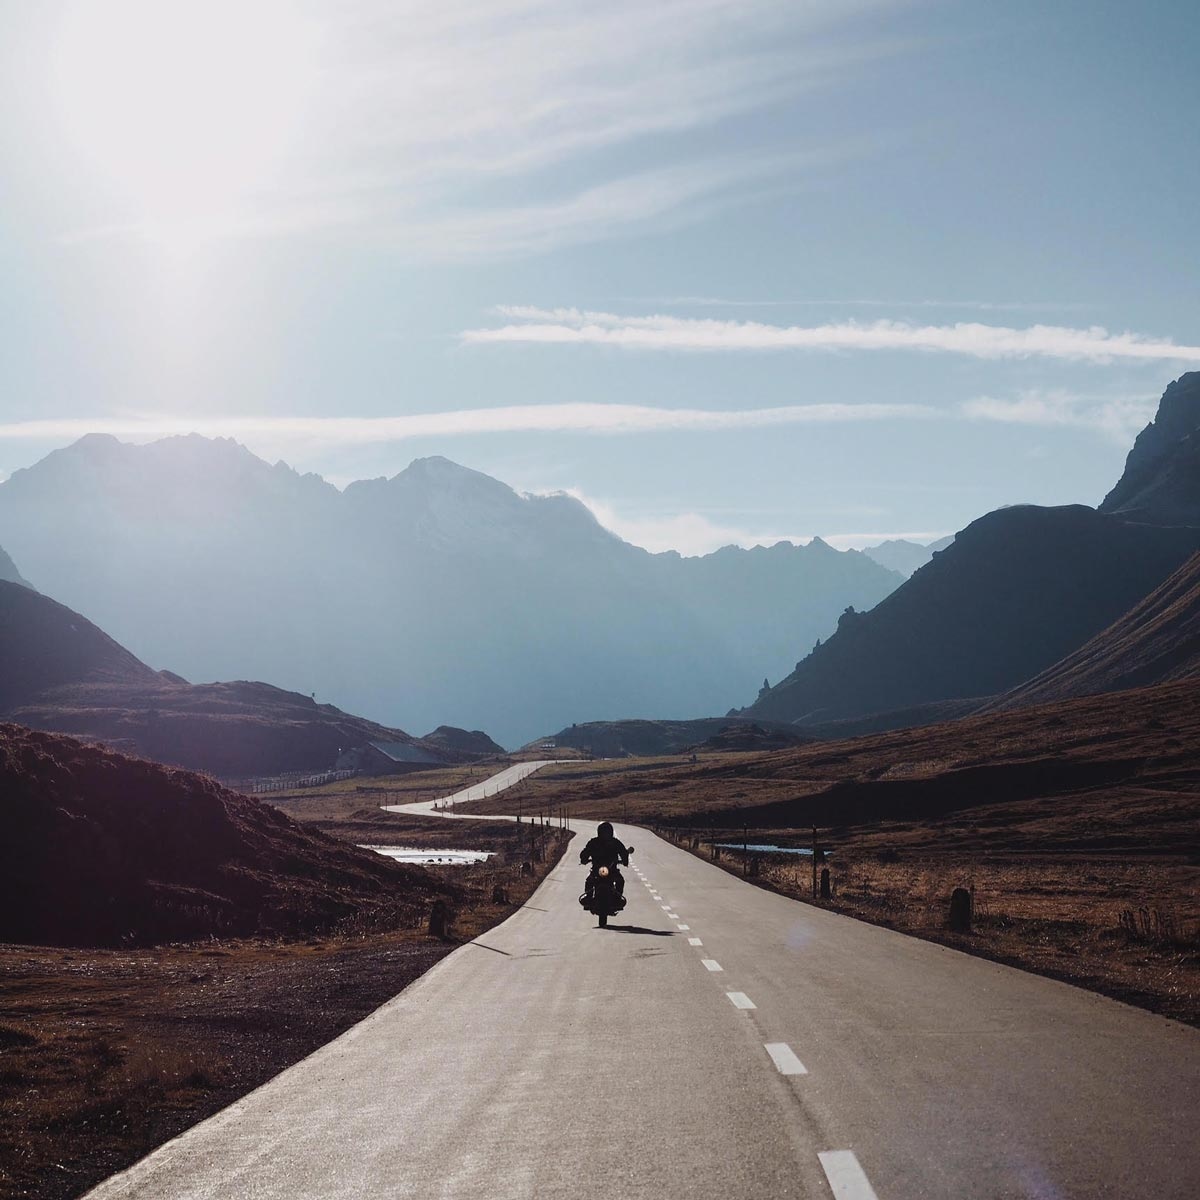 Photo by Martina Bisaz of motorcycle riding down swiss highway with mountainous backdrop